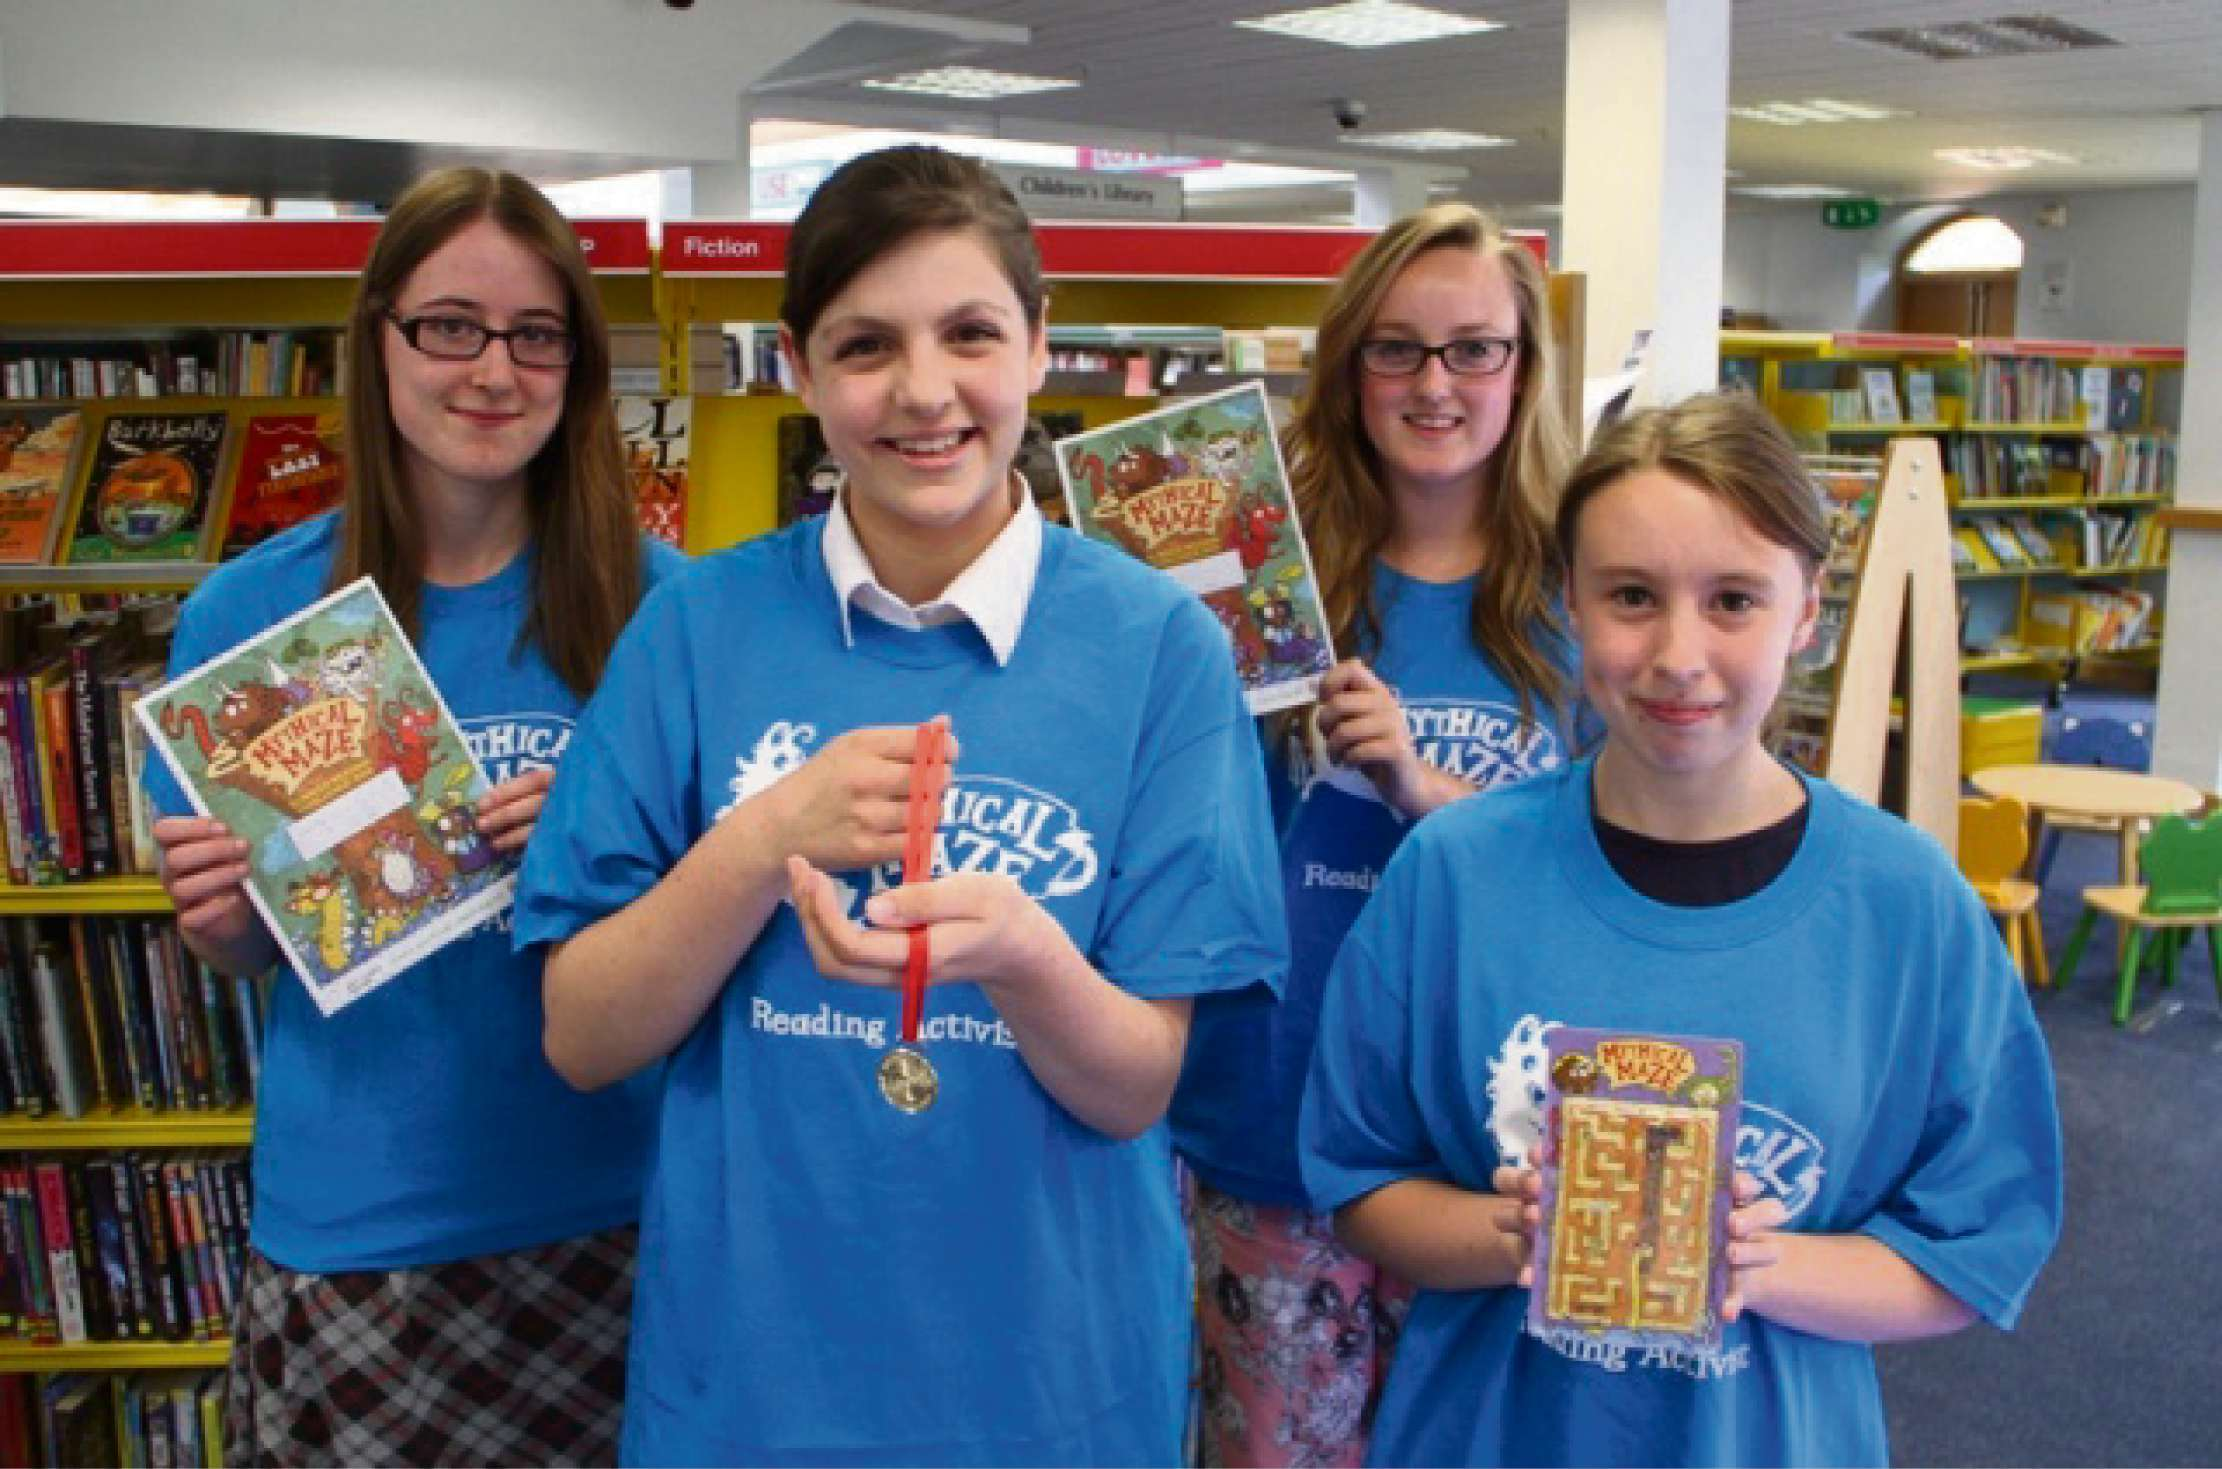 Teenagers throughout Warwickshire will be taking part in the scheme to help younger readers.